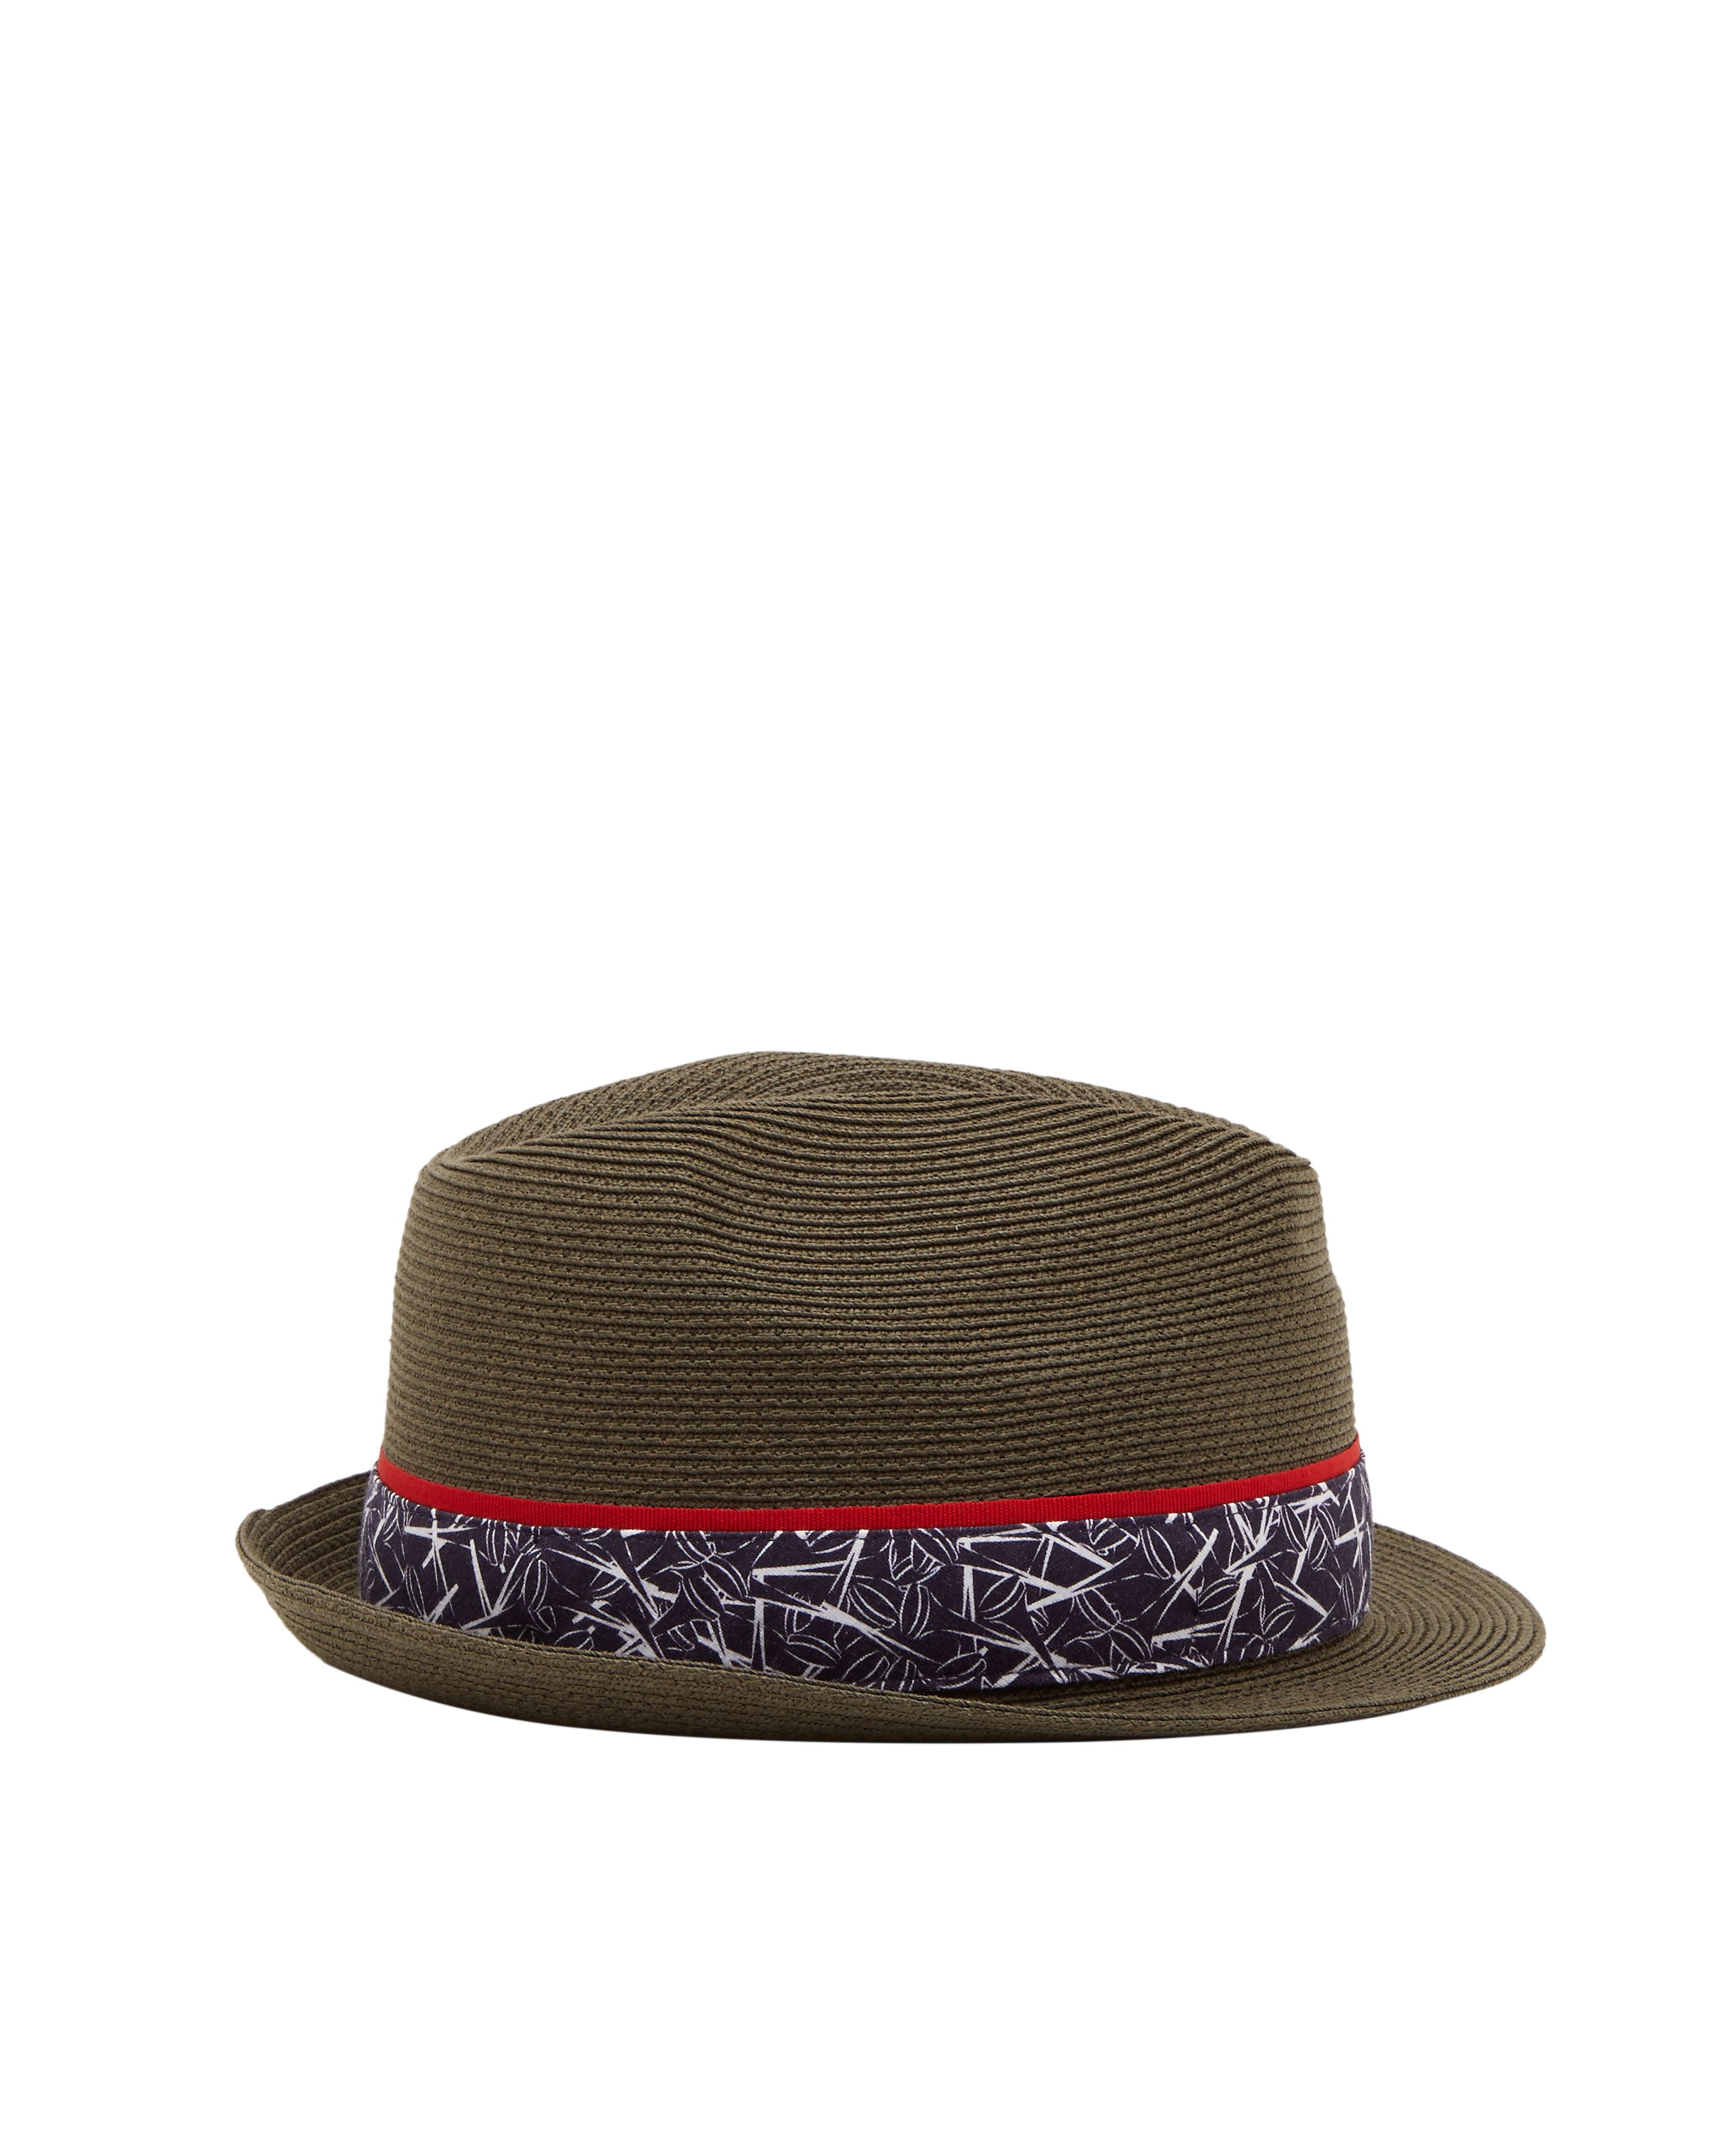 Ted Baker Happyg Printed Trilby Hat Green